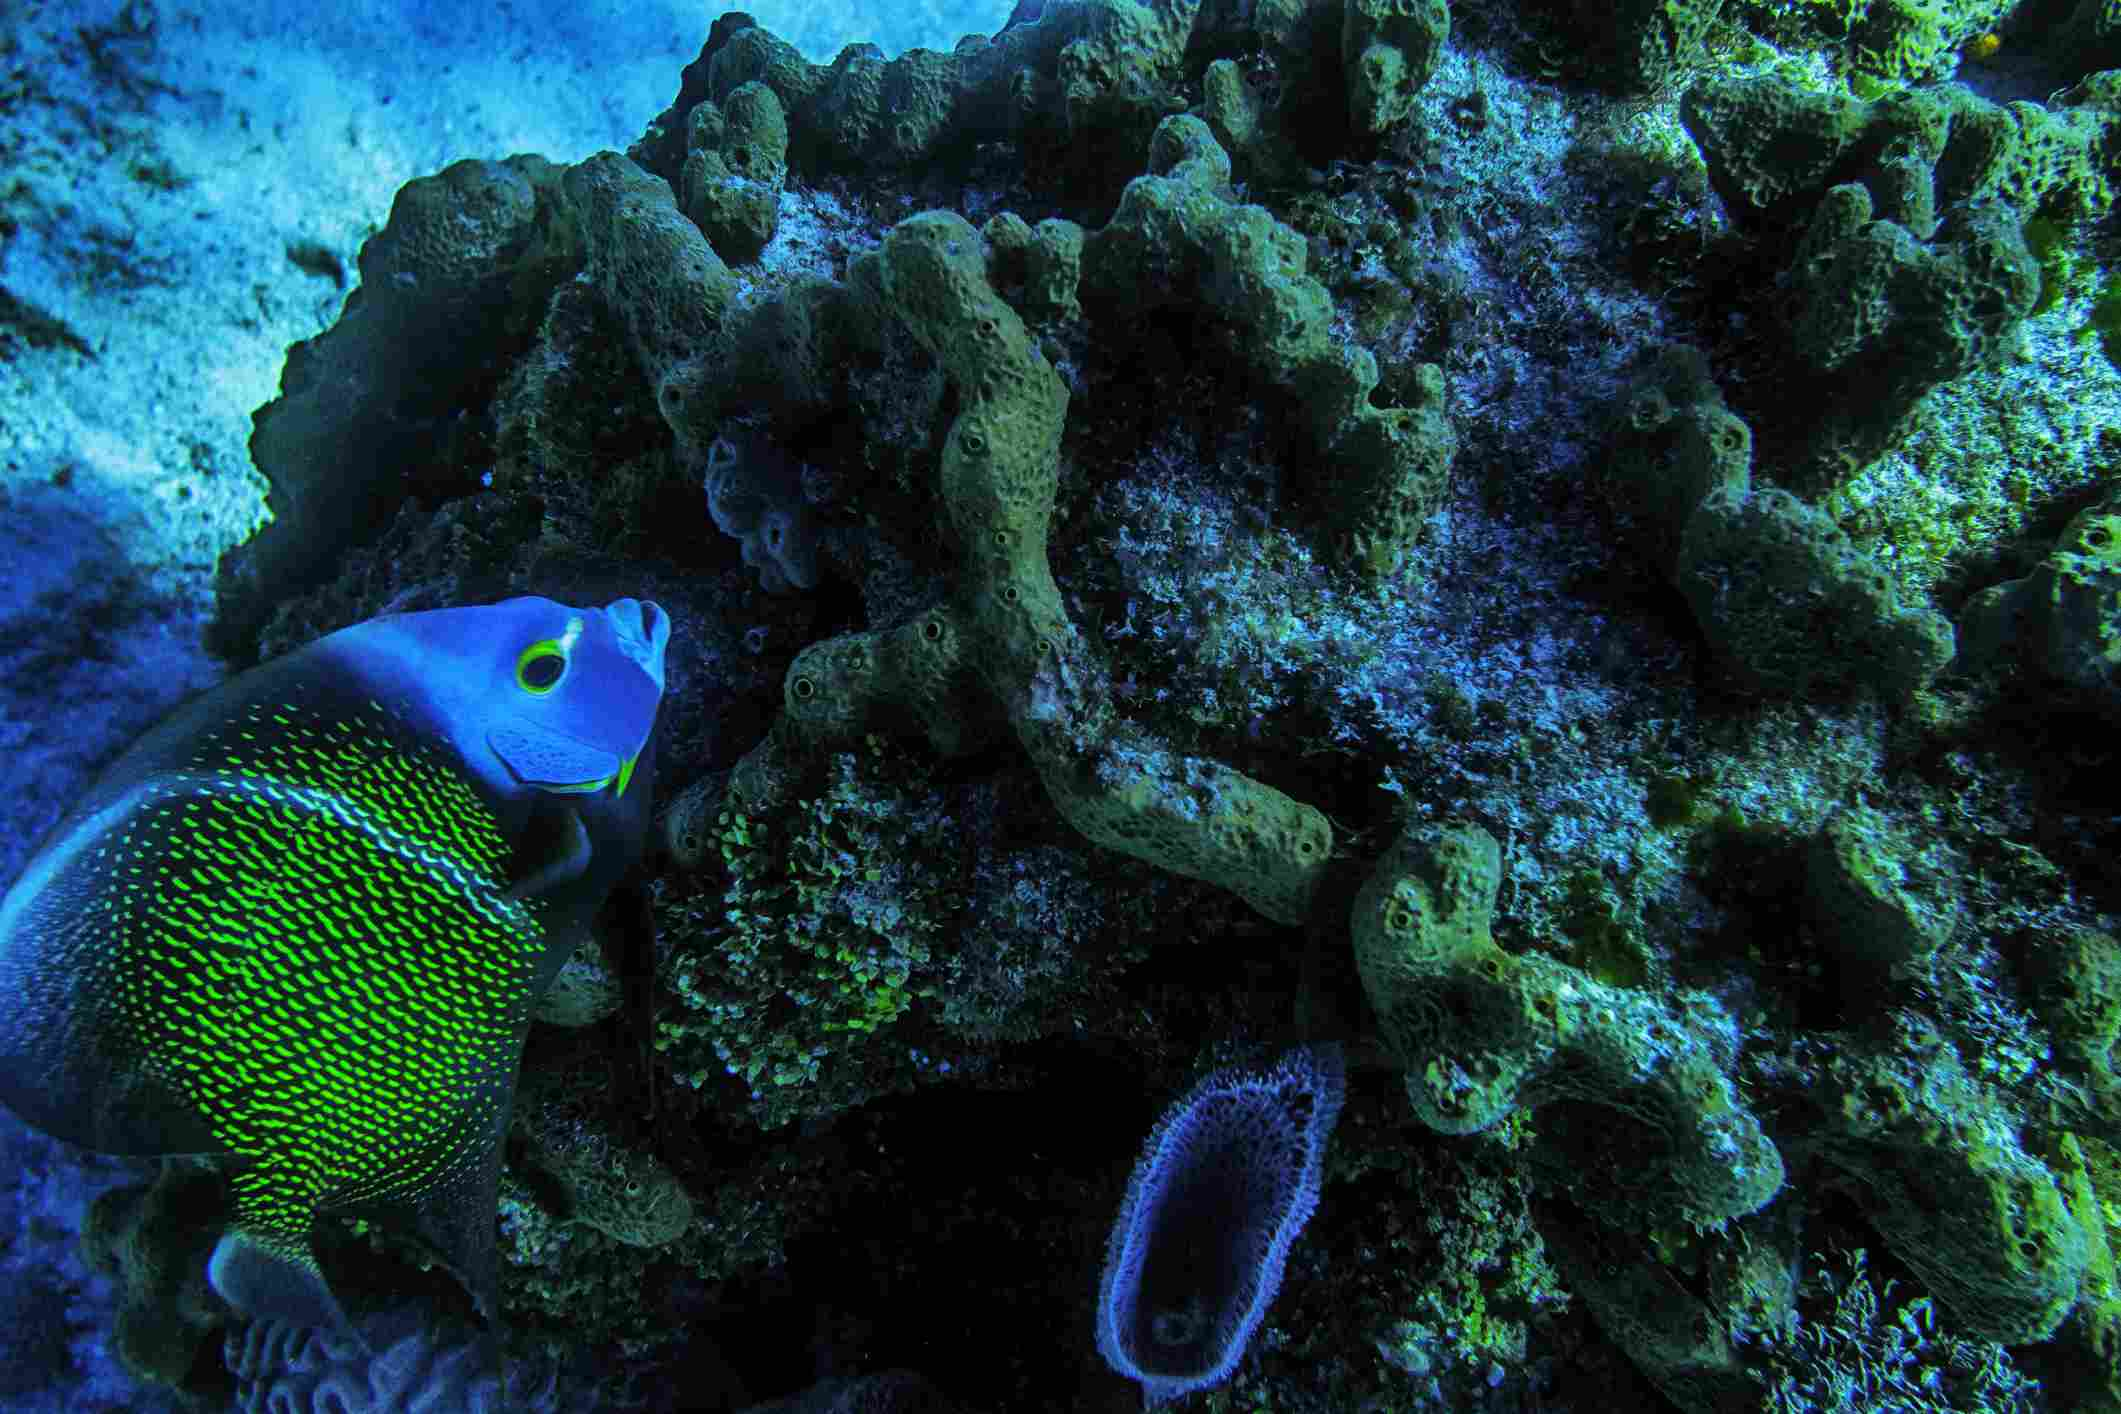 A French Angelfish swimming around a coral reef in the Caribbean, Tulum, Mexico's Mayan Riviera, Quintana Roo, Mexico